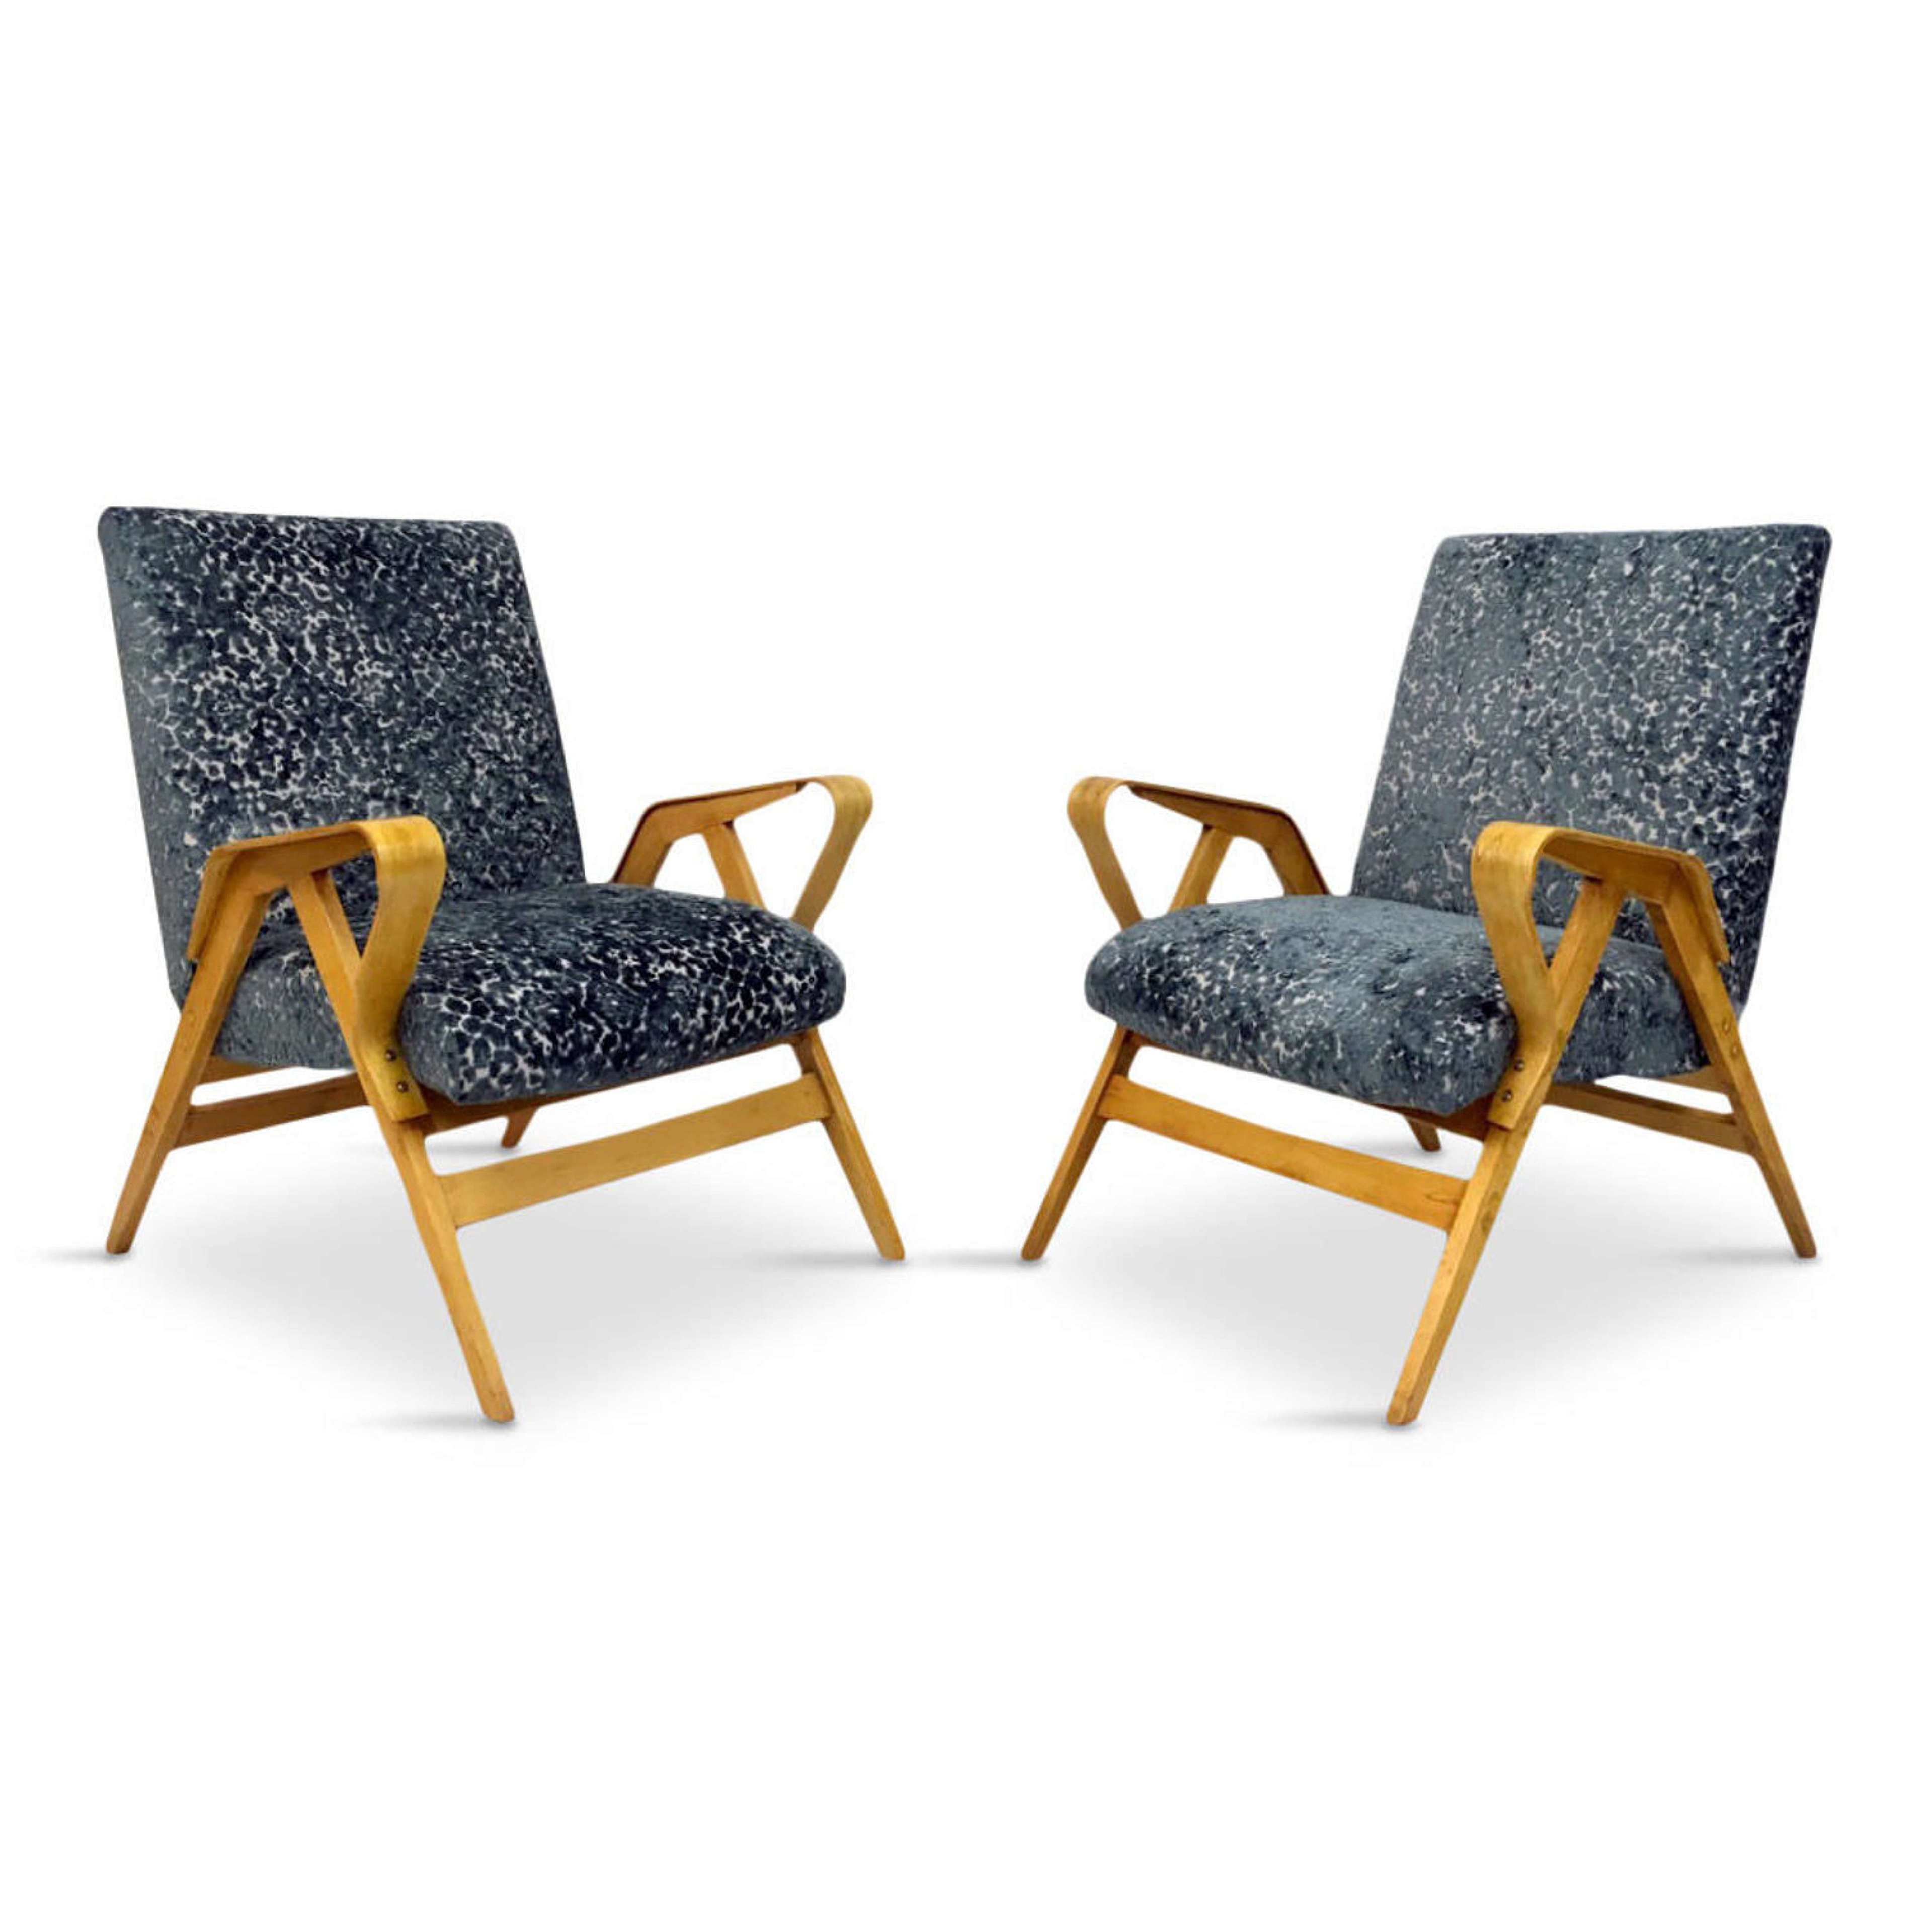 Image of: A Pair Of Mid Century Bentwood Armchairs By Tatra In Antique Armchairs